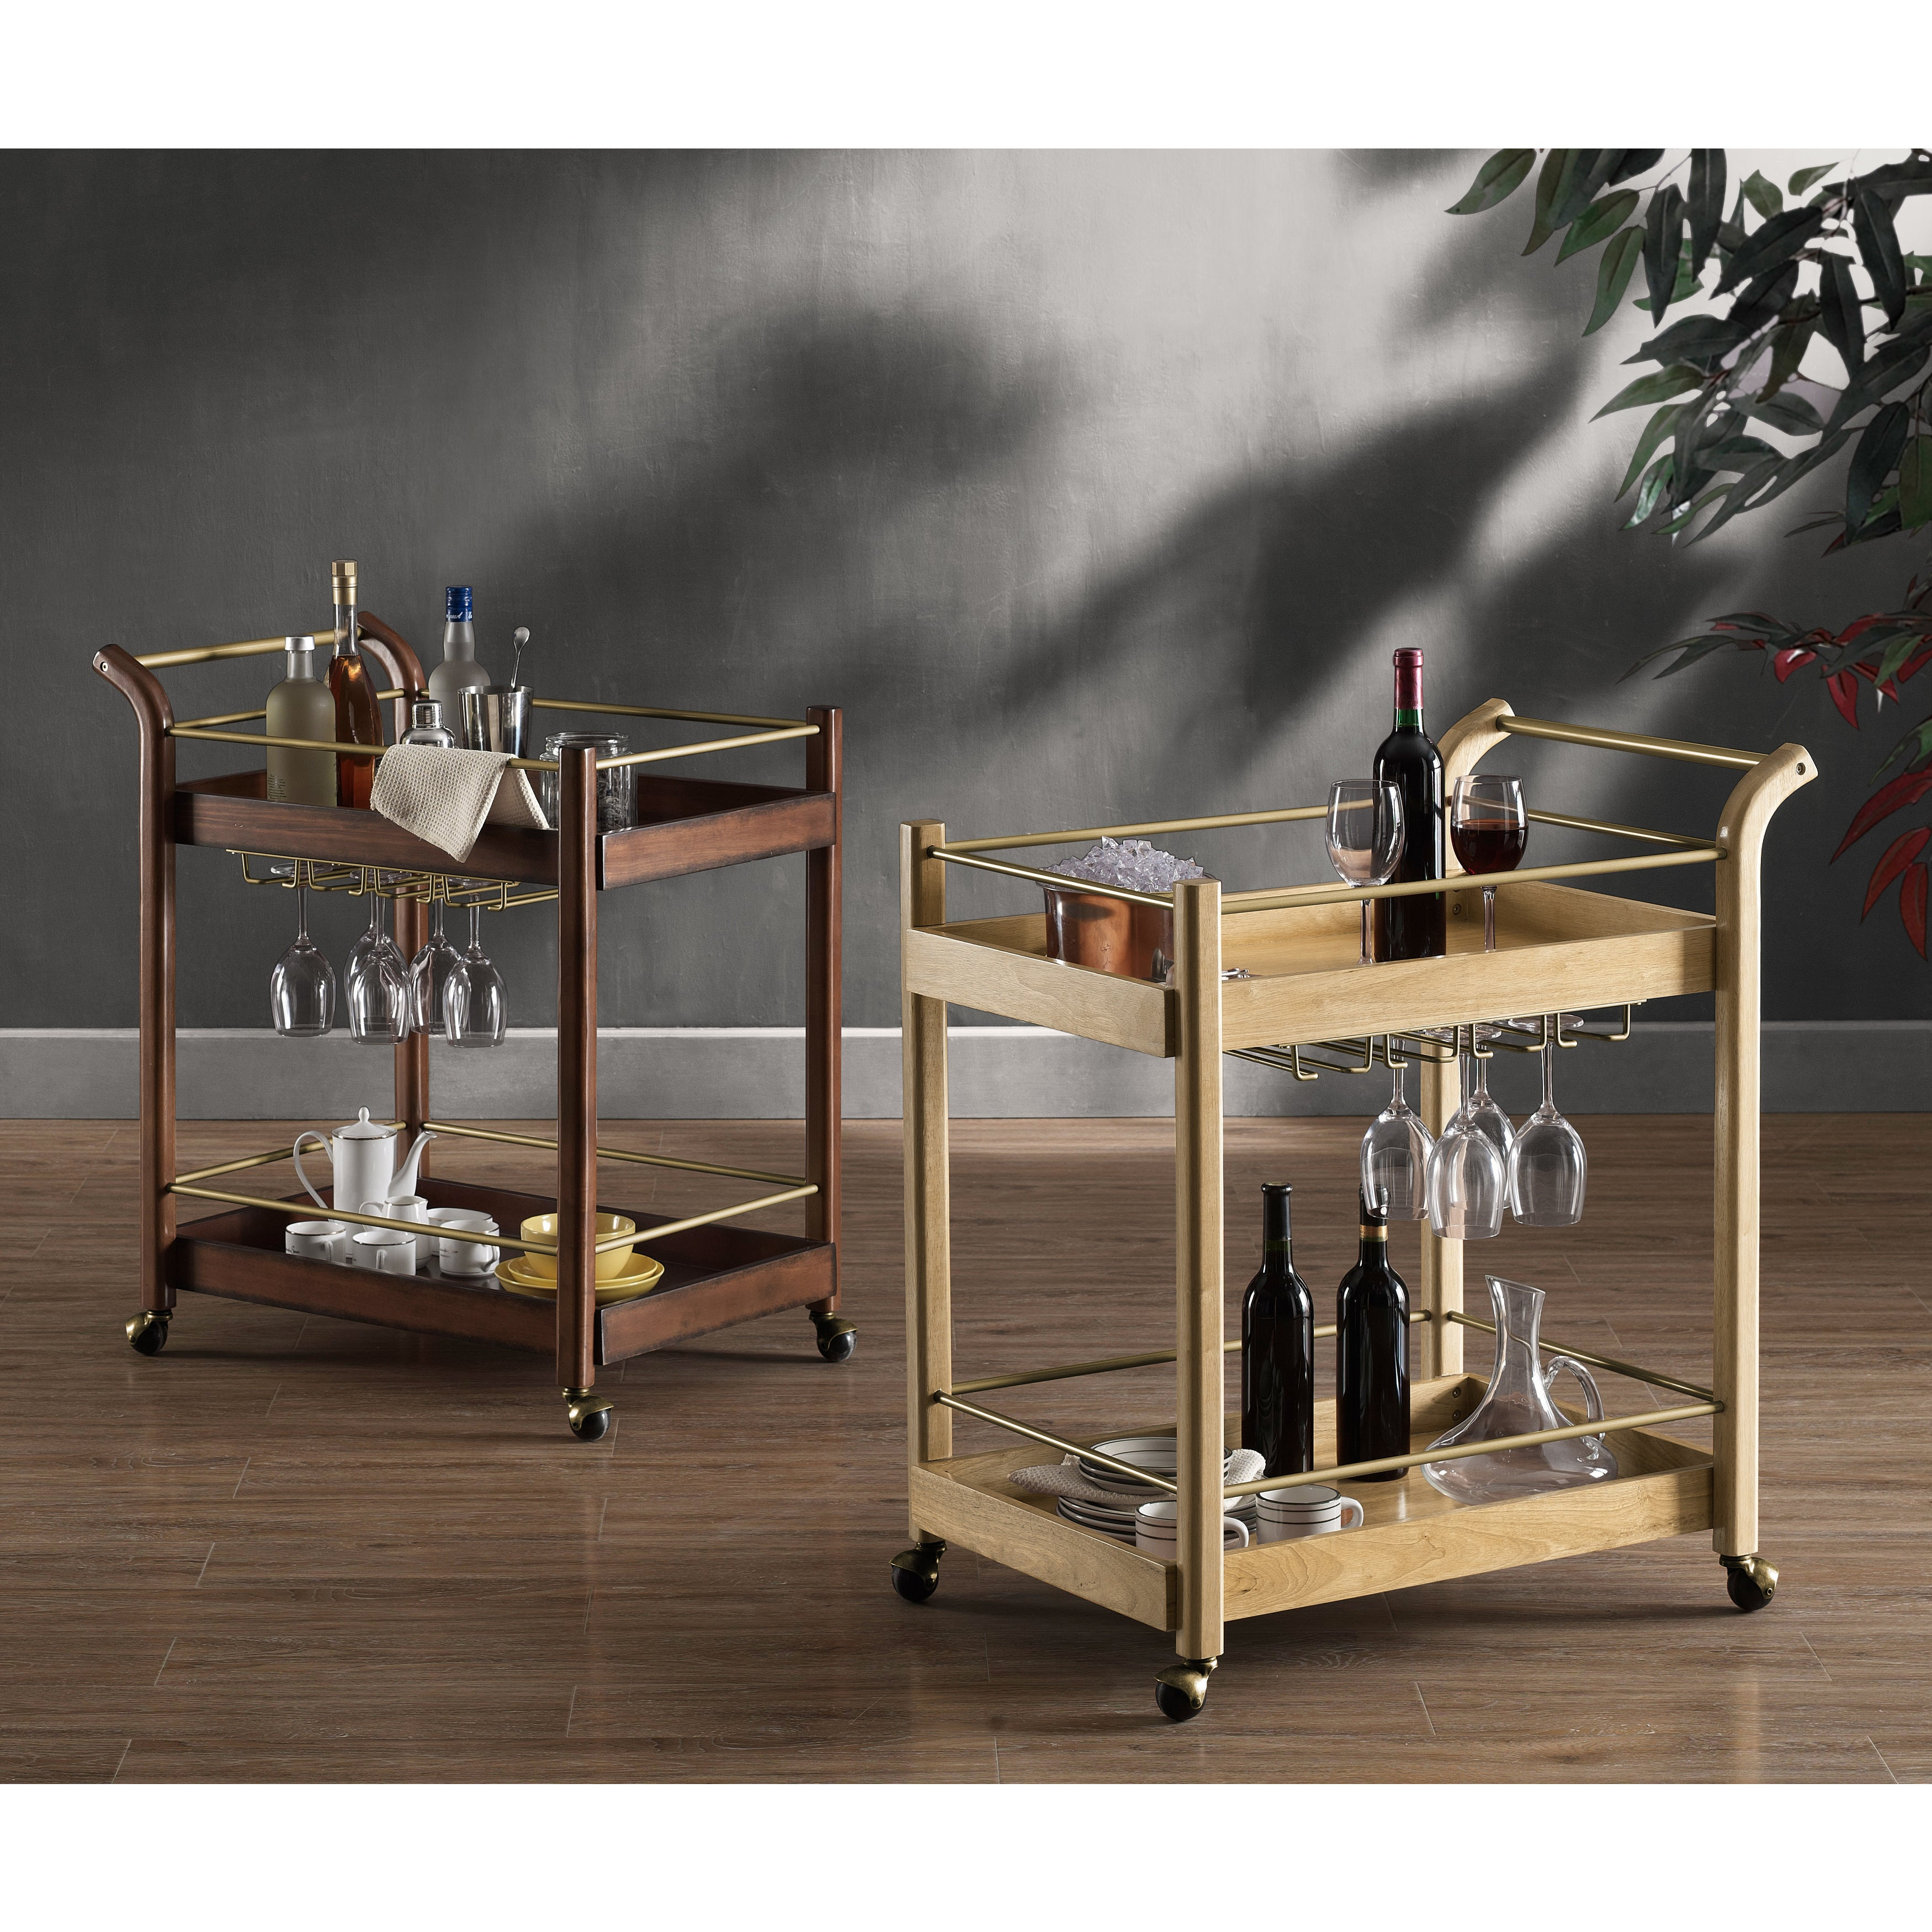 Picture of: Carson Carrington I Love Living Wood Bar Cart Overstock 9816577